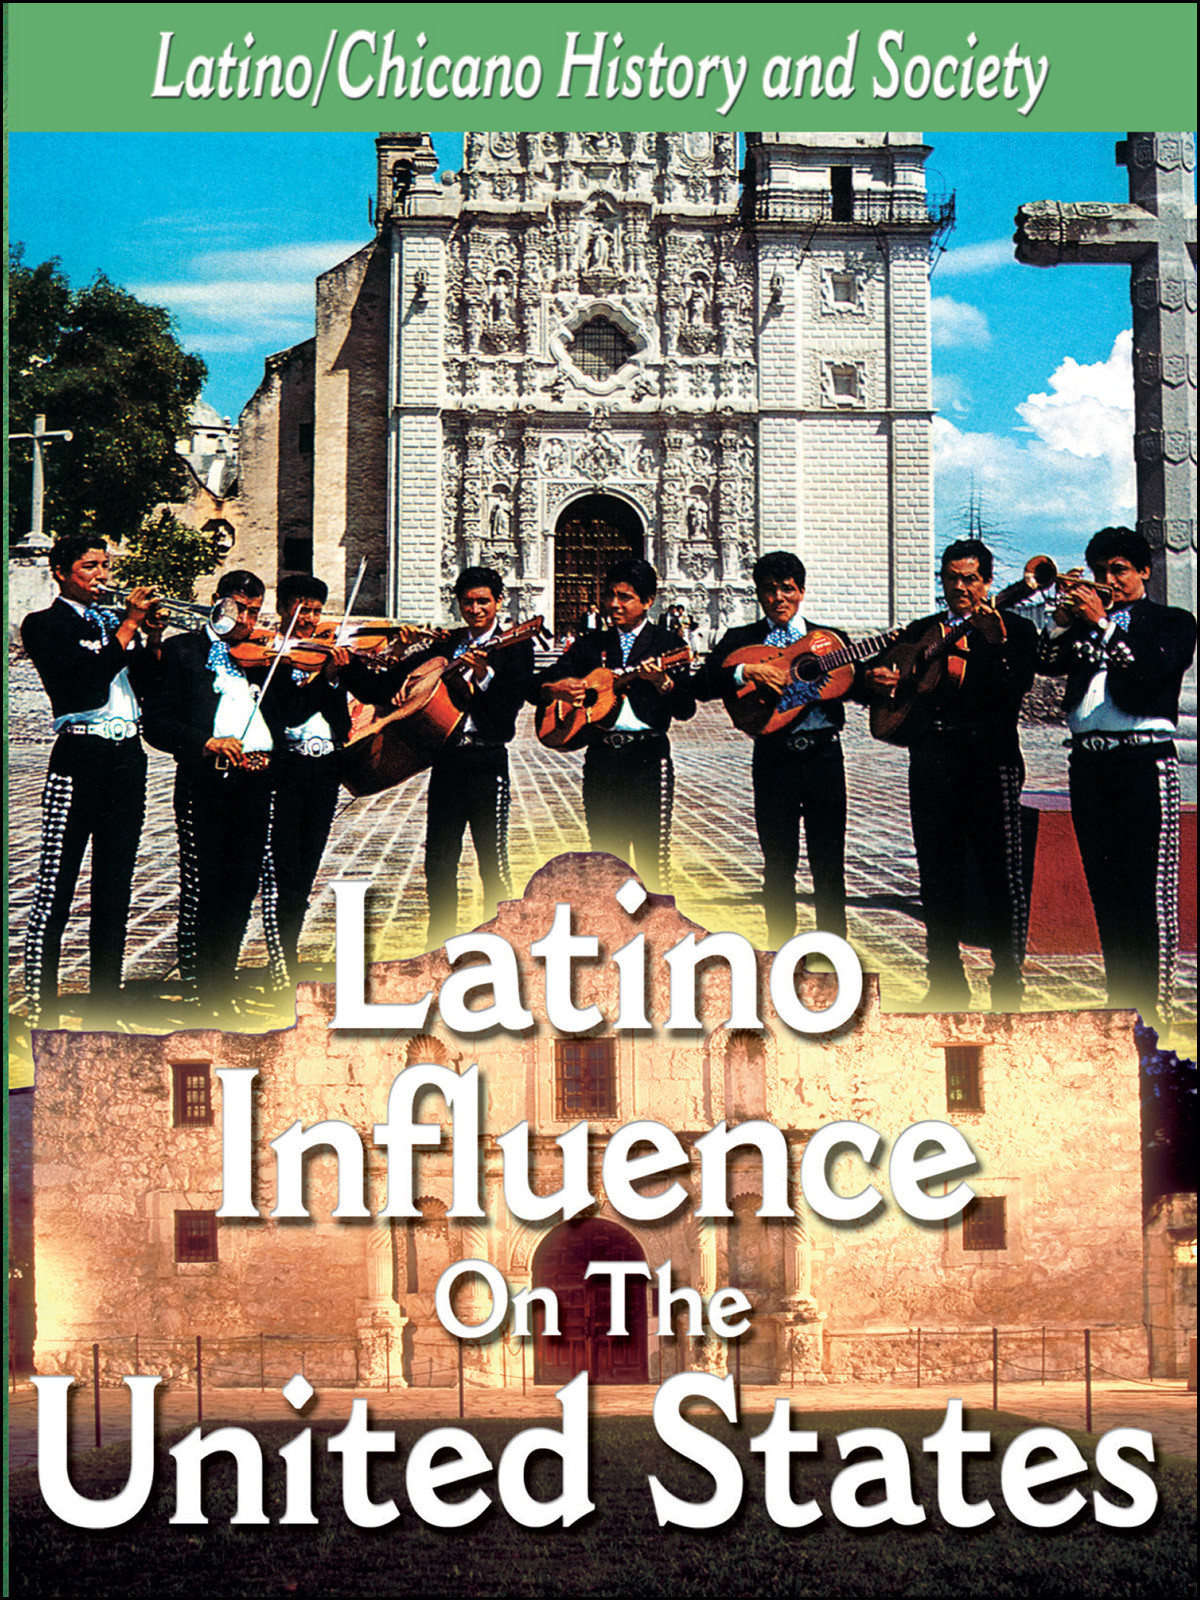 L911 - The Latino Influence On the United States